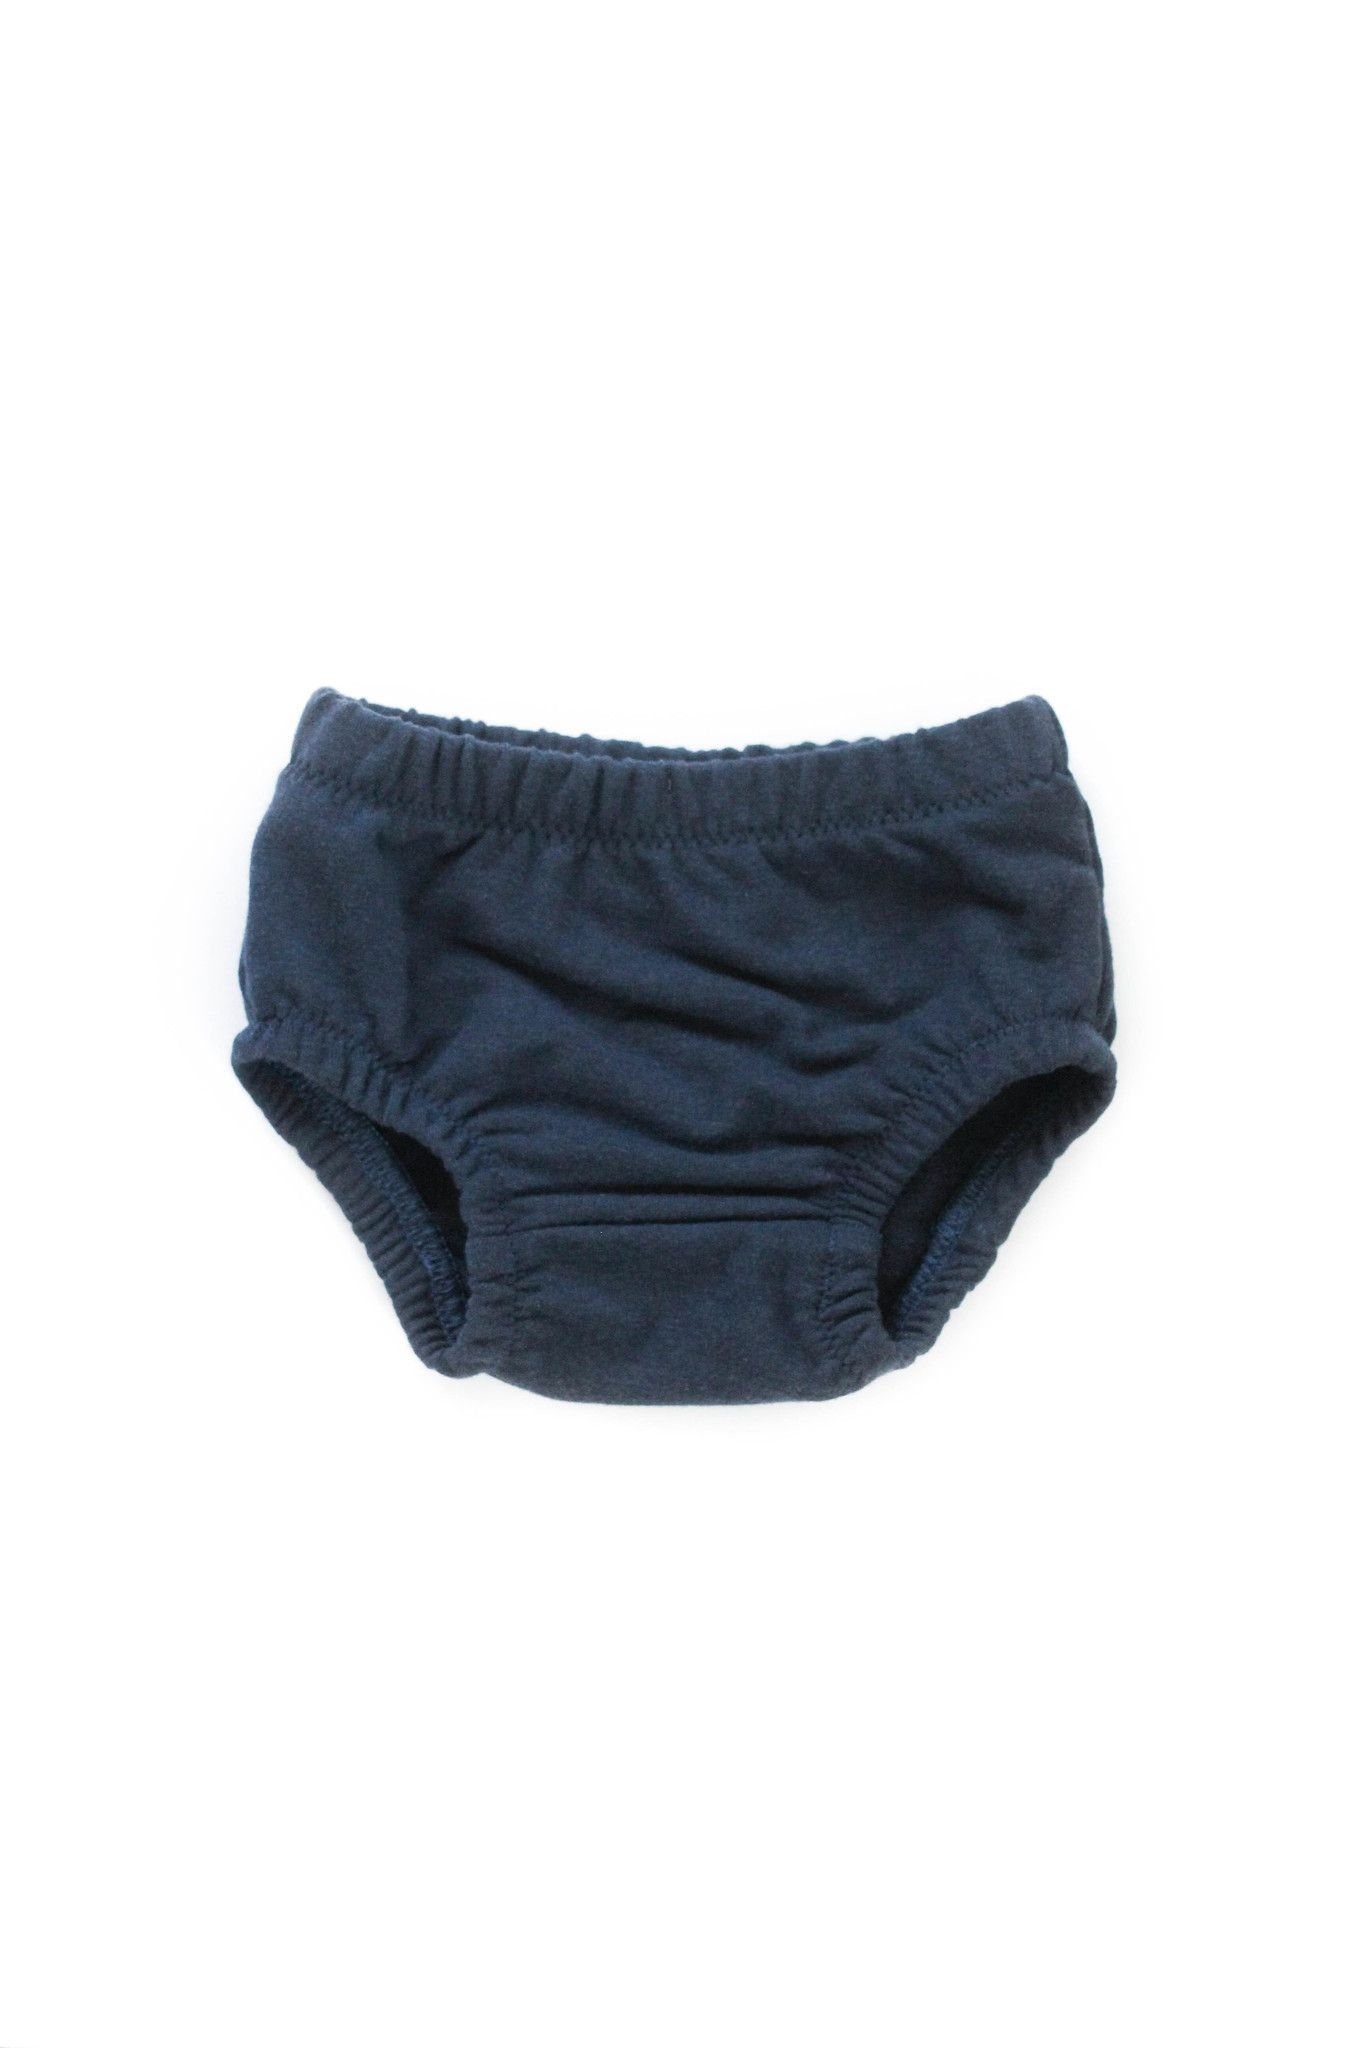 French Terry Baby Bloomers in Navy | Products, Babies and French terry